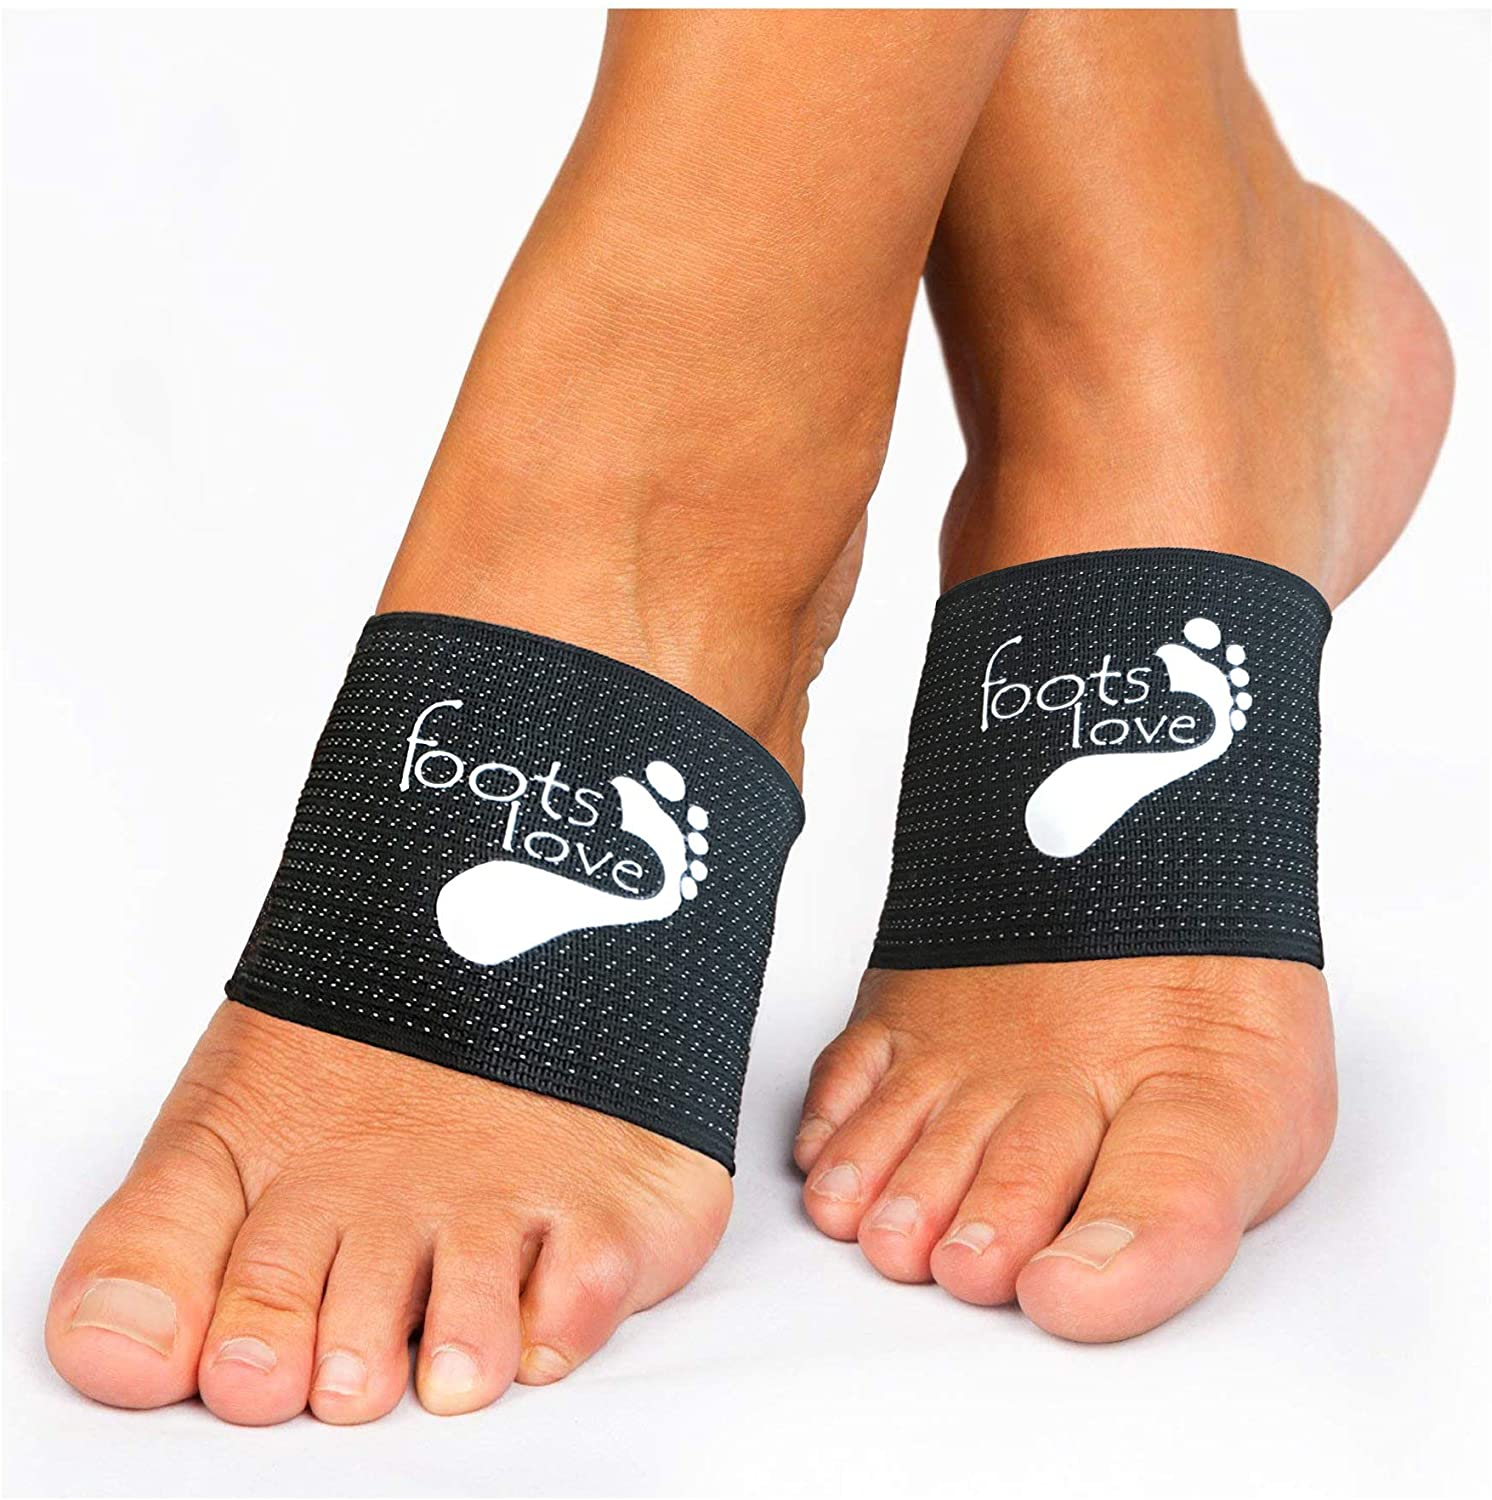 Foots Love- Compression Arch Support Sleeves for Plantar Fasciitis. The Original Nano Sock Copper Bandage. Guaranteed Top Quality. Avoid The Pain.: Health & Personal Care